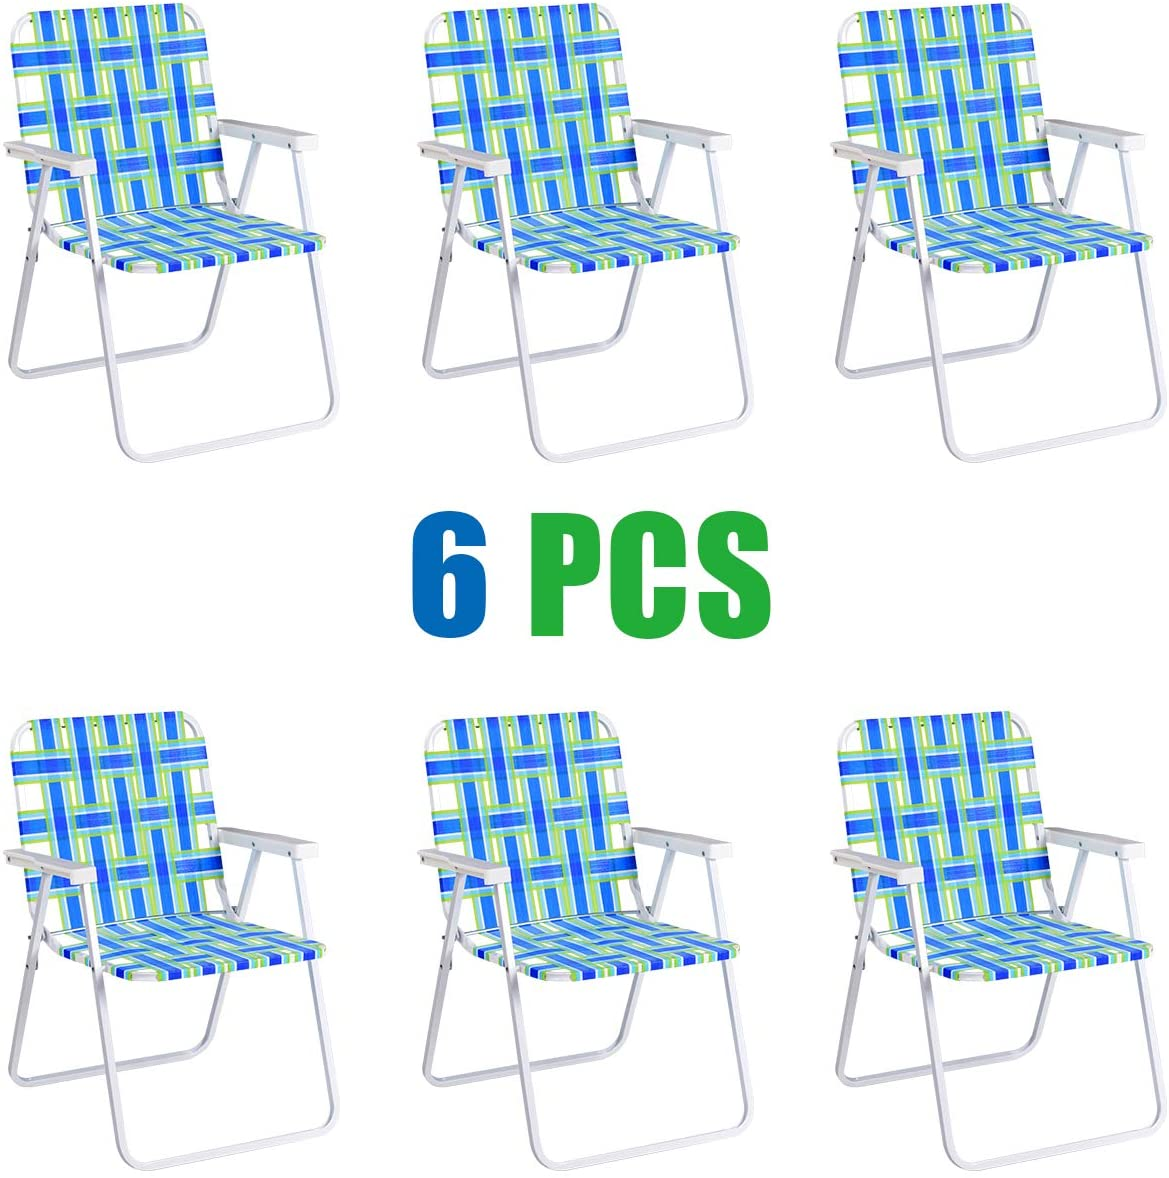 Giantex Folding Lawn Chairs Set of 6 Outdoor Portable Beach Chair W Stable Steel Frame for Camping,Beach,Backyard BBQ Folding Webbed Chair Bule